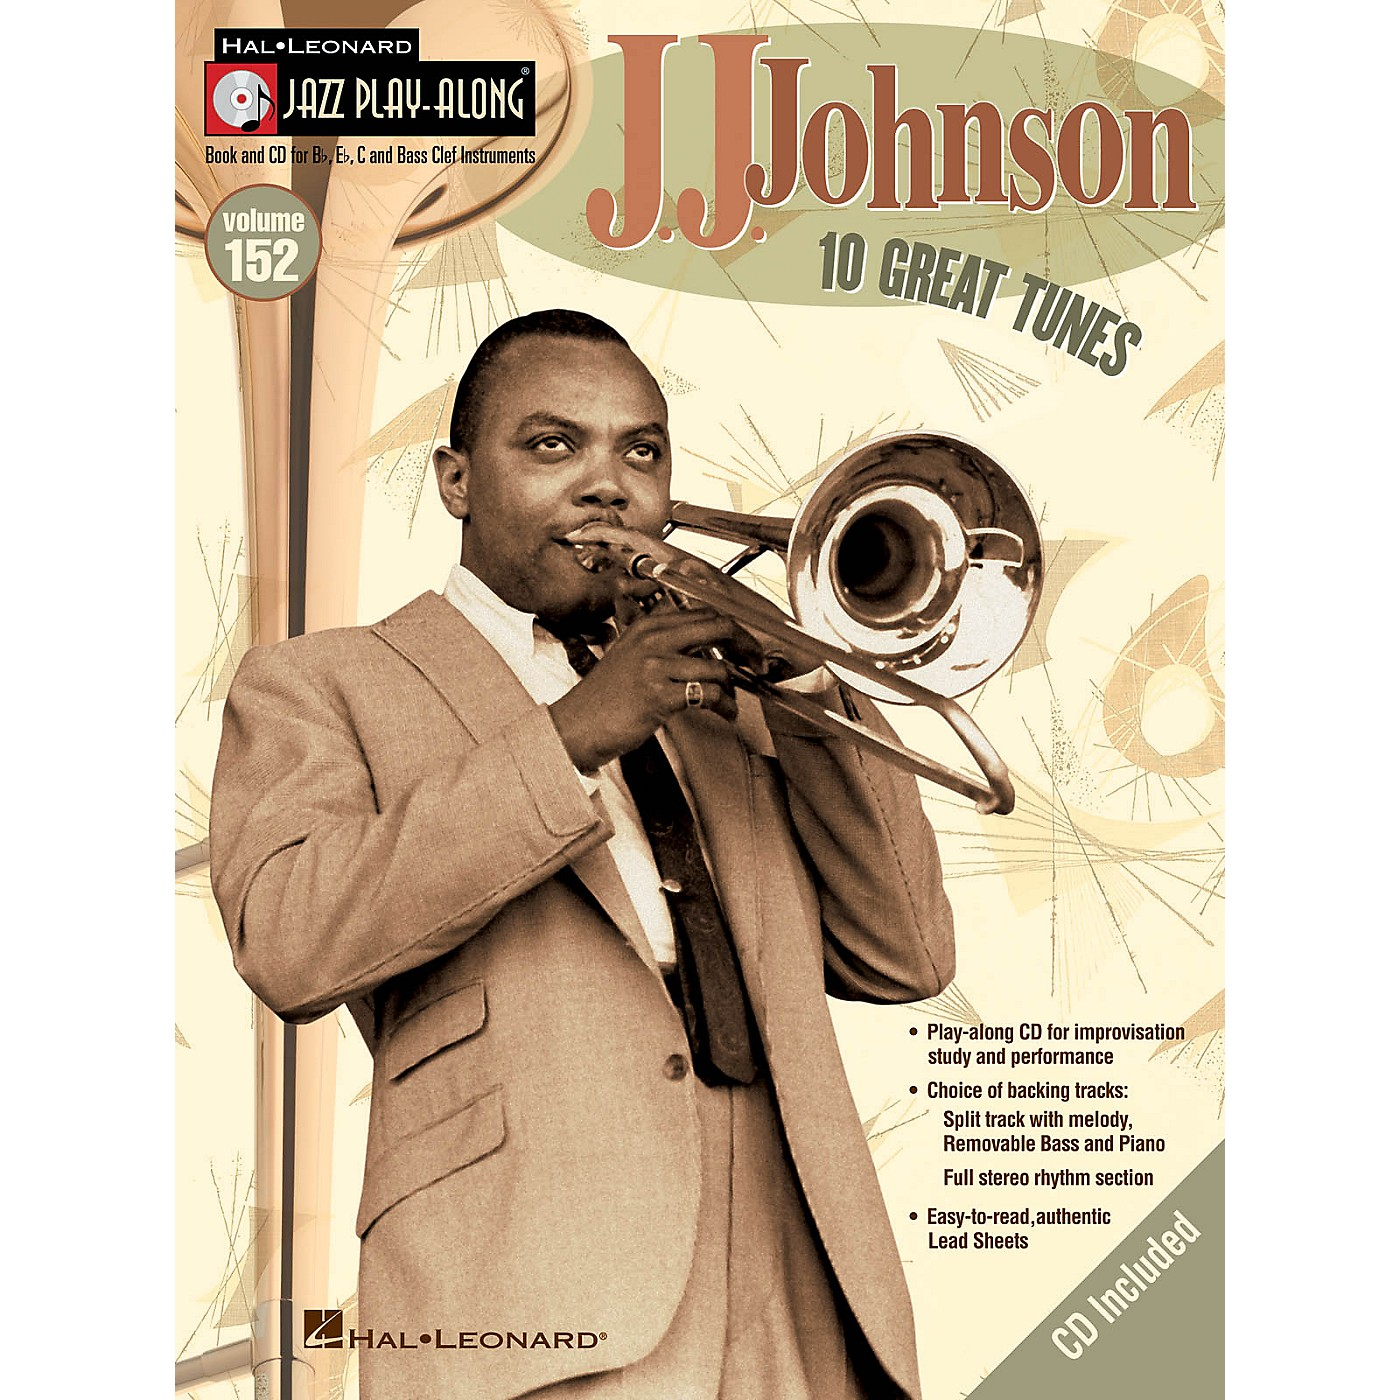 Hal Leonard J.J. Johnson (Jazz Play-Along Volume 152) Jazz Play Along Series Softcover with CD by J.J. Johnson thumbnail